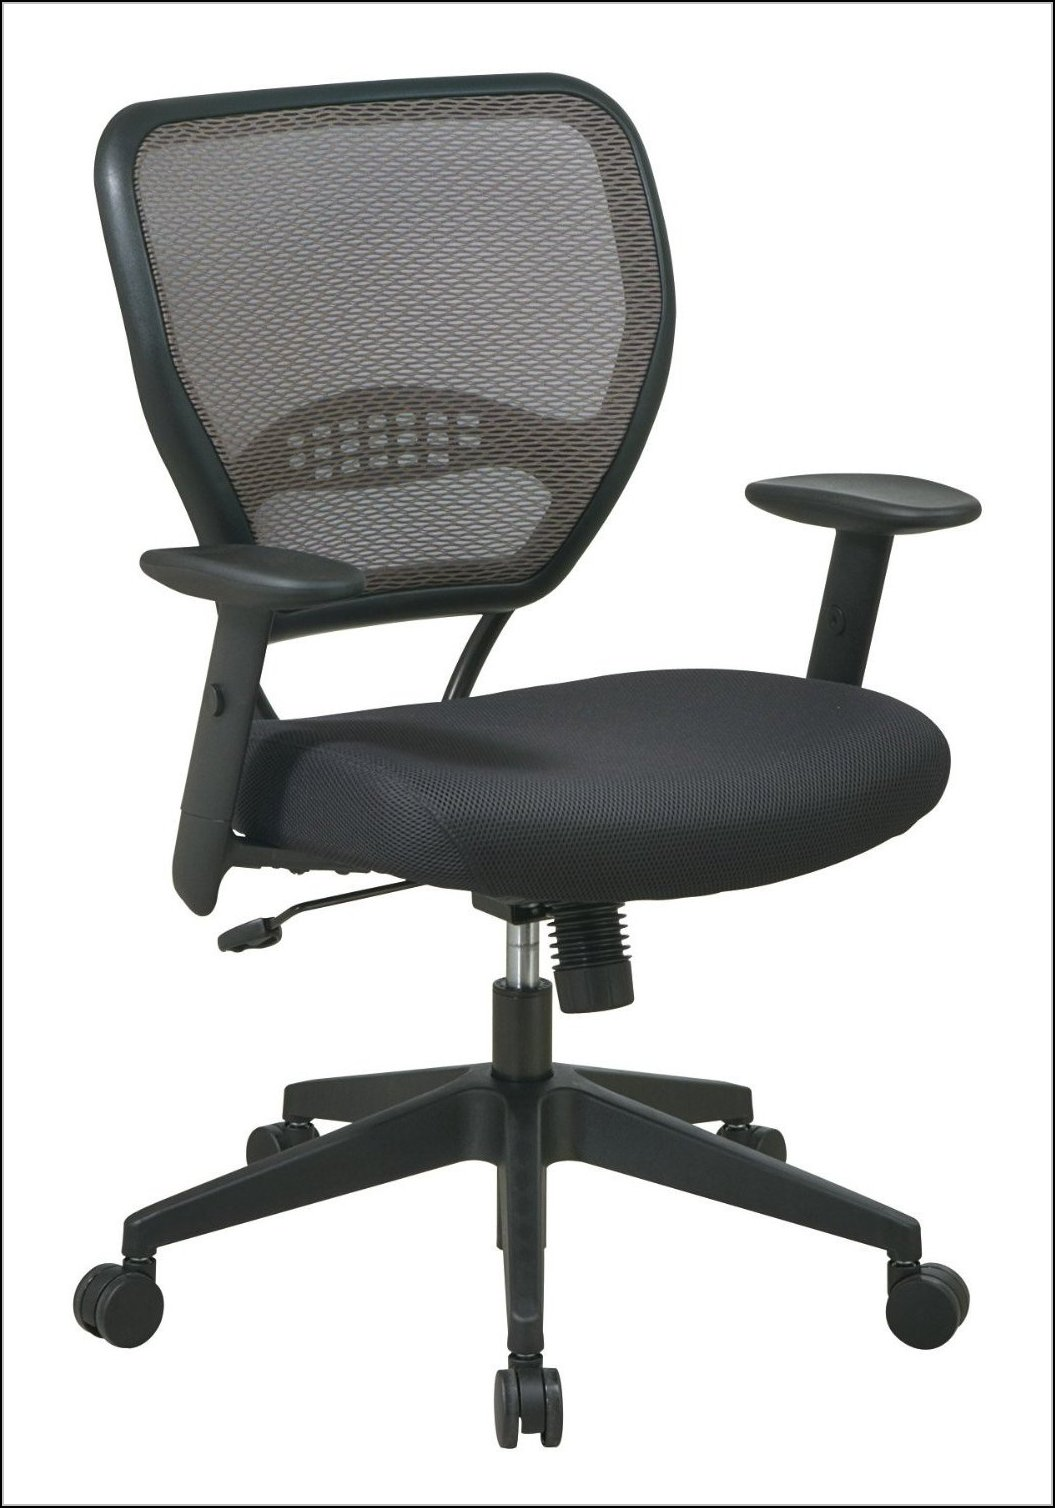 Best Office Chair For Bad Back